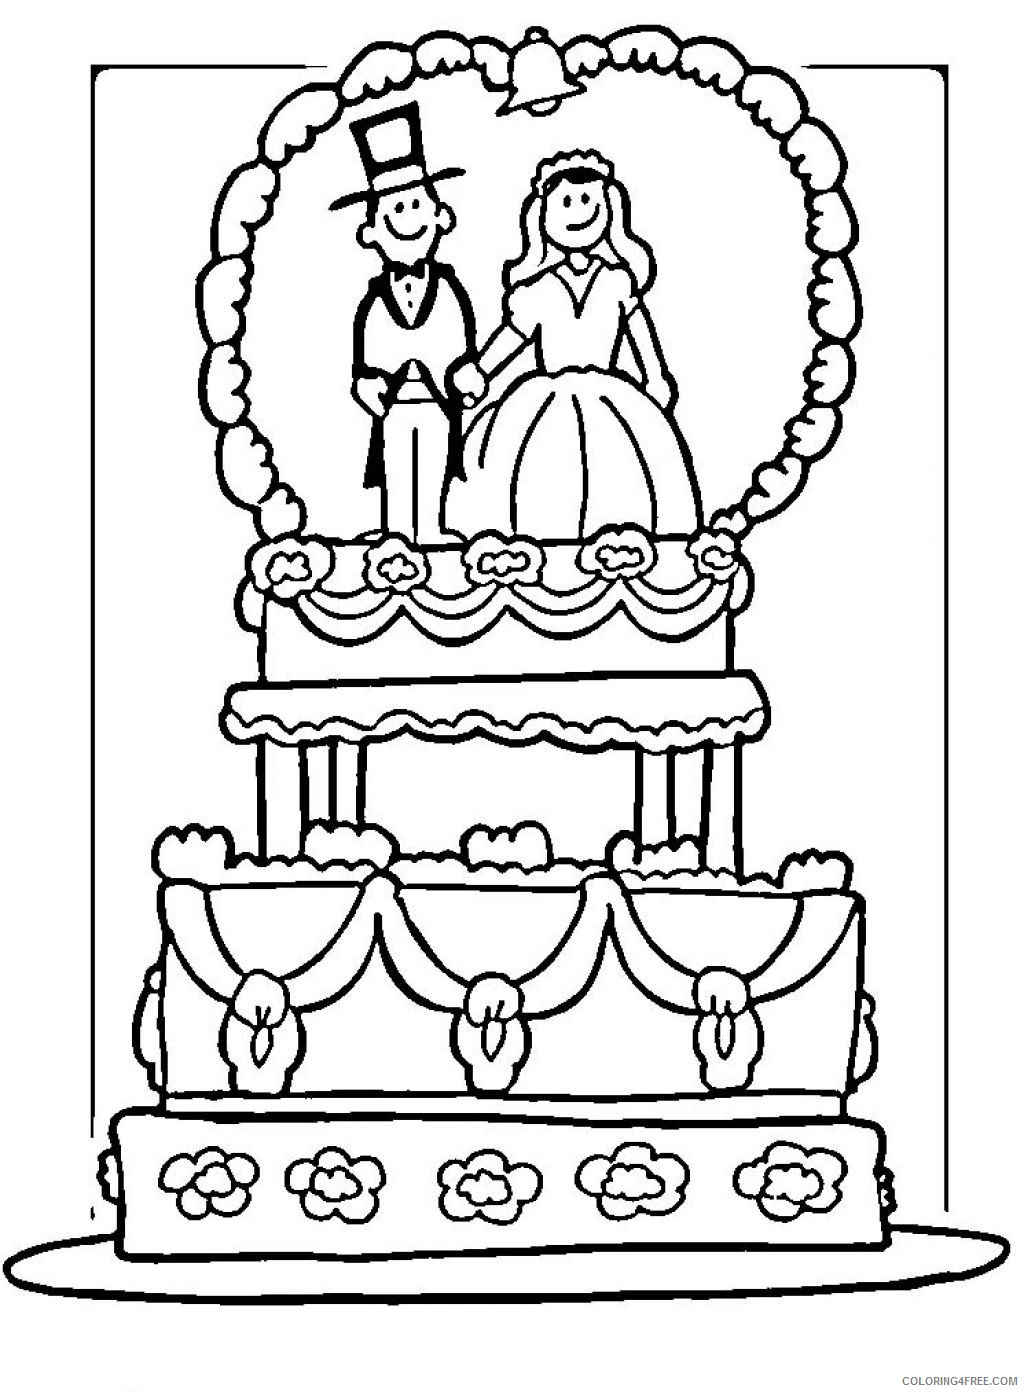 wedding cake coloring pages Coloring4free